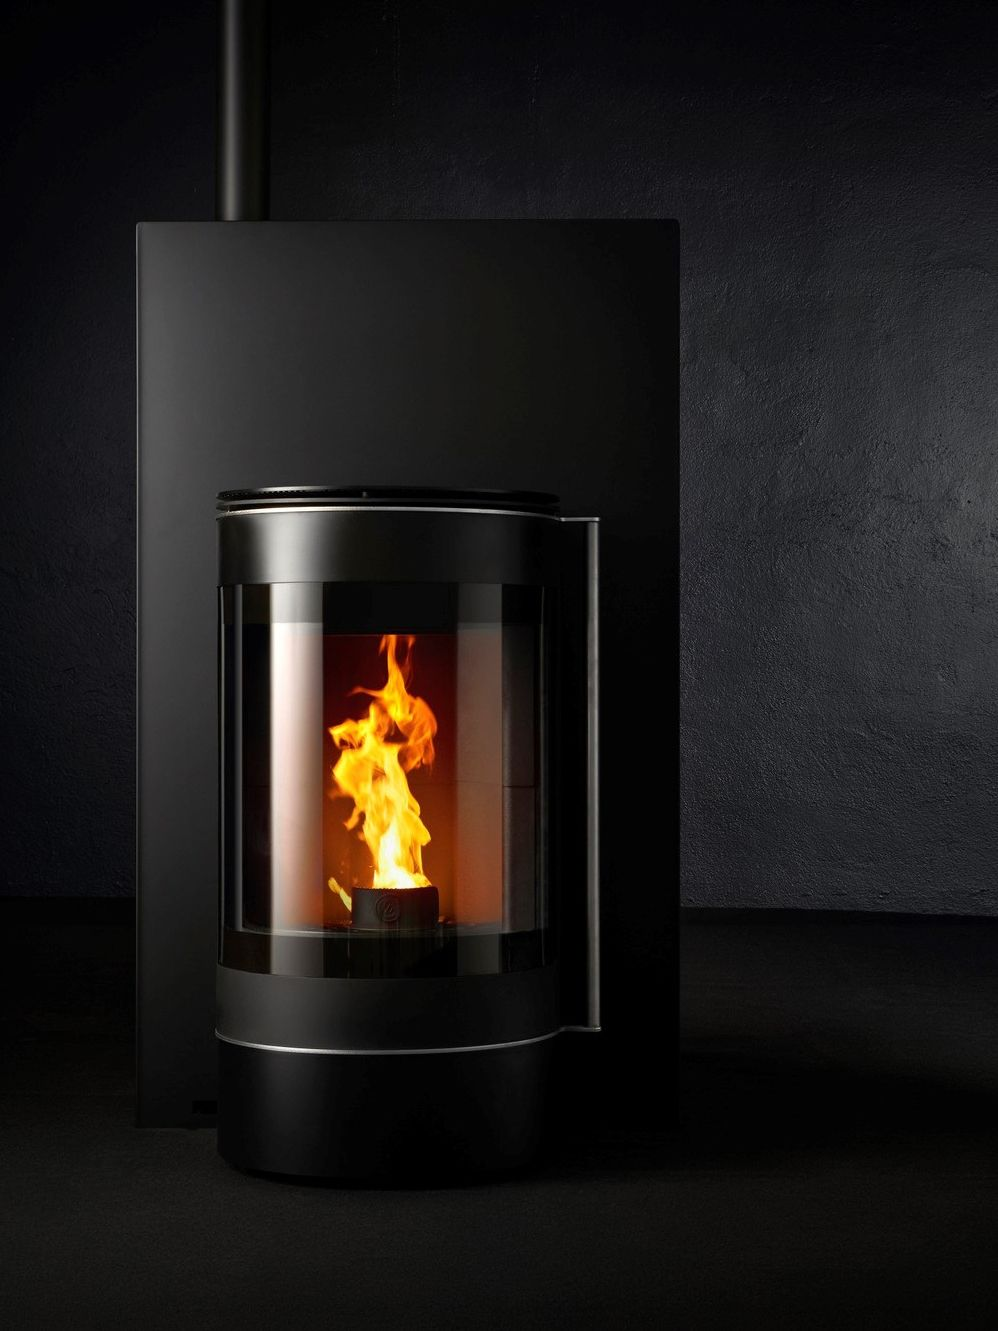 Stufa Caminetto Montegrappa Pellet Class A Wall Mounted Steel Stove Alter Ego By Caminetti